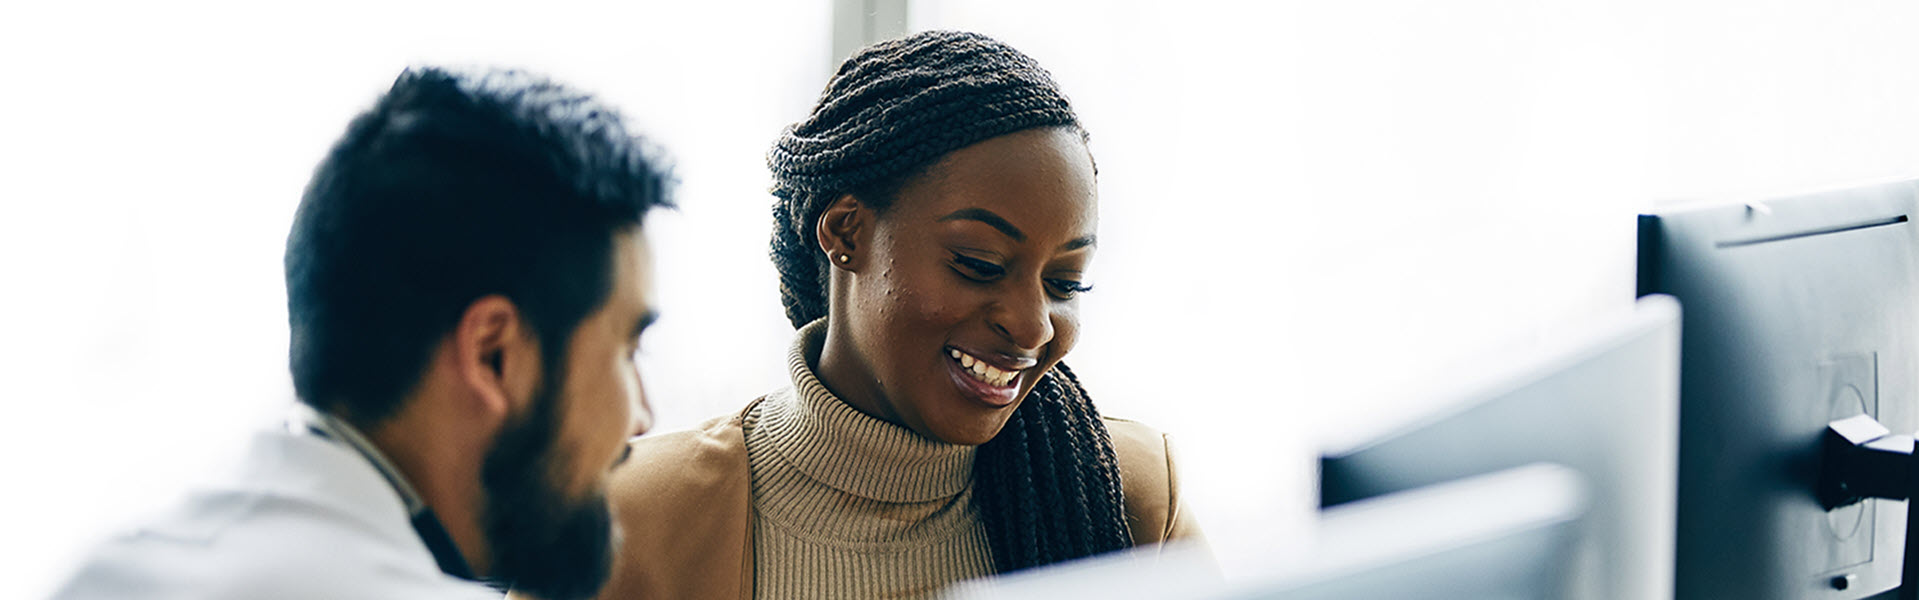 Female smiling and looking at computer.